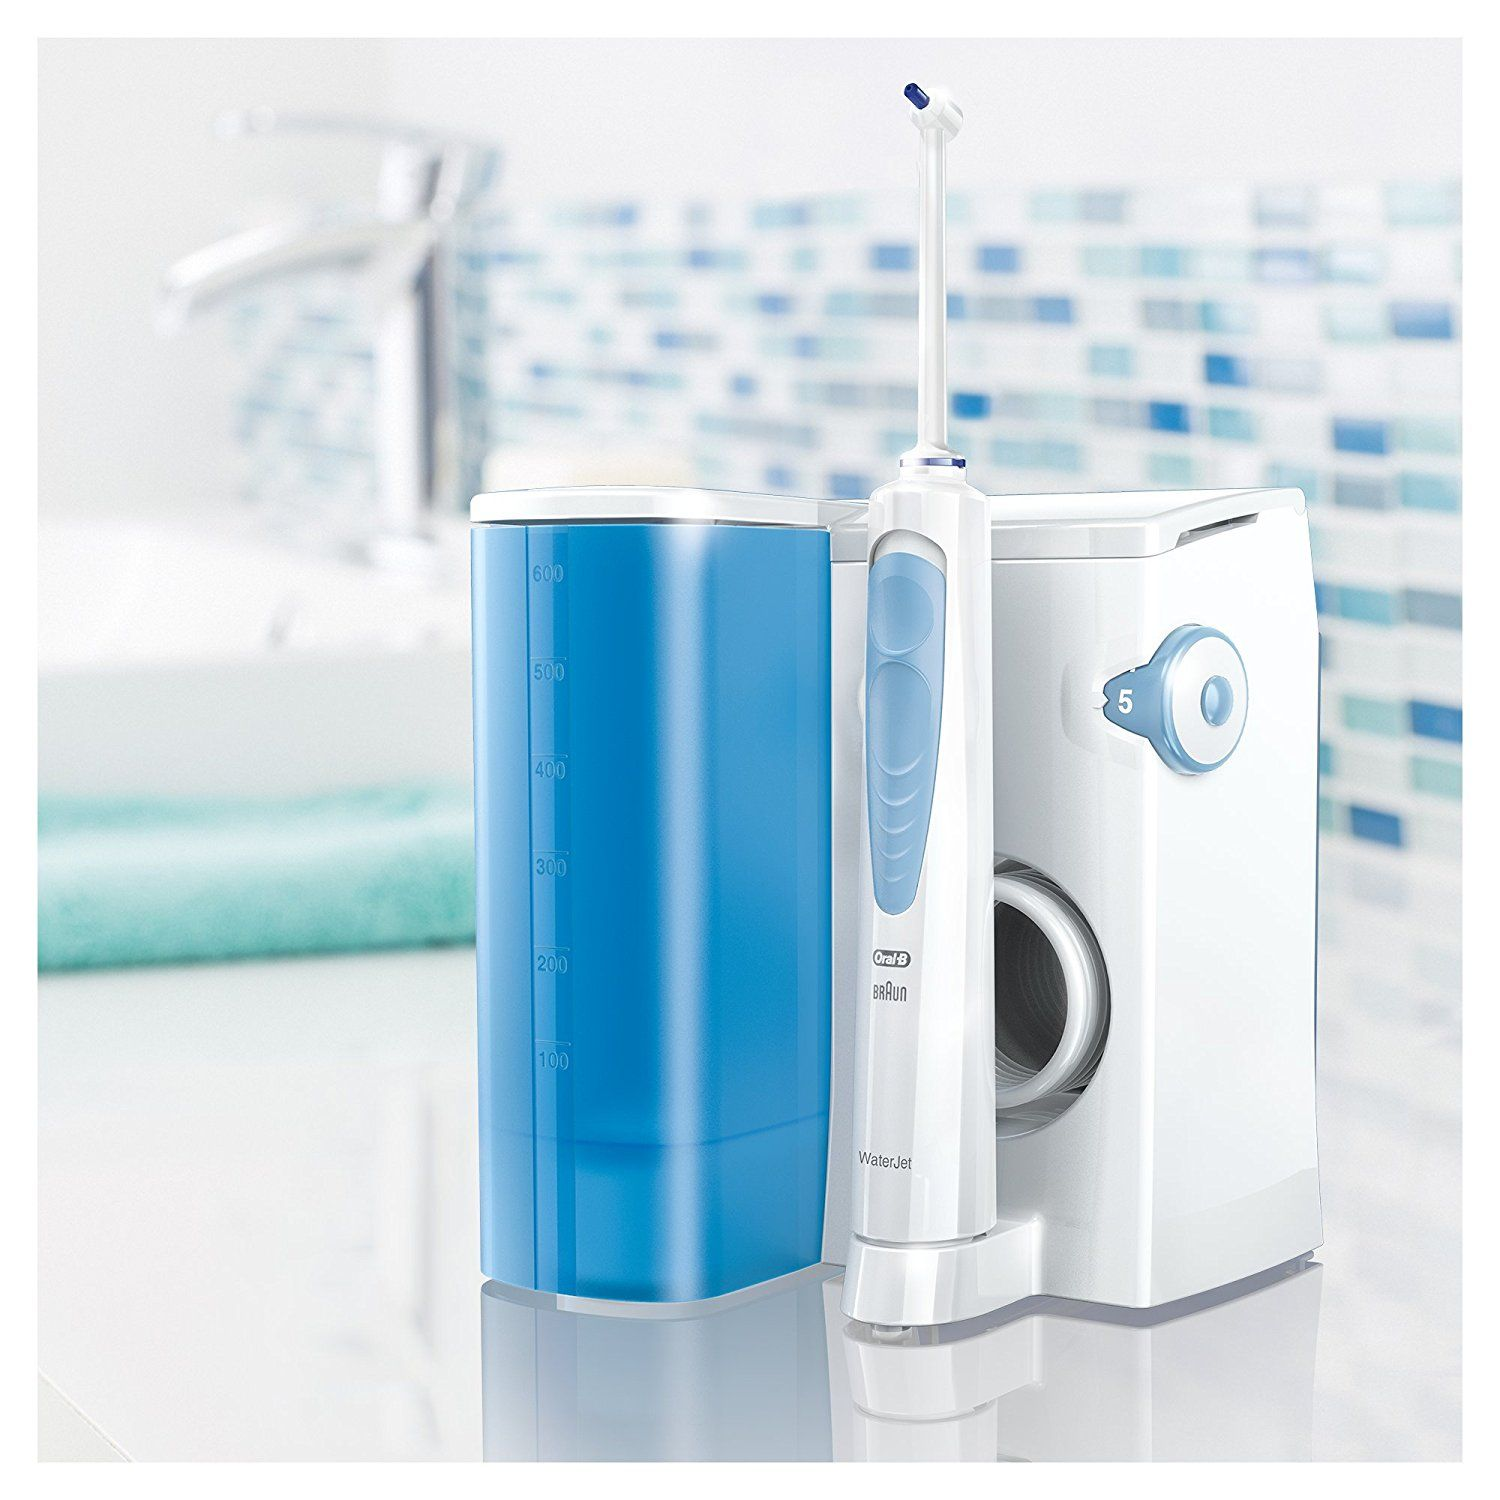 irrigador dental oral b waterjet - oferta amazon